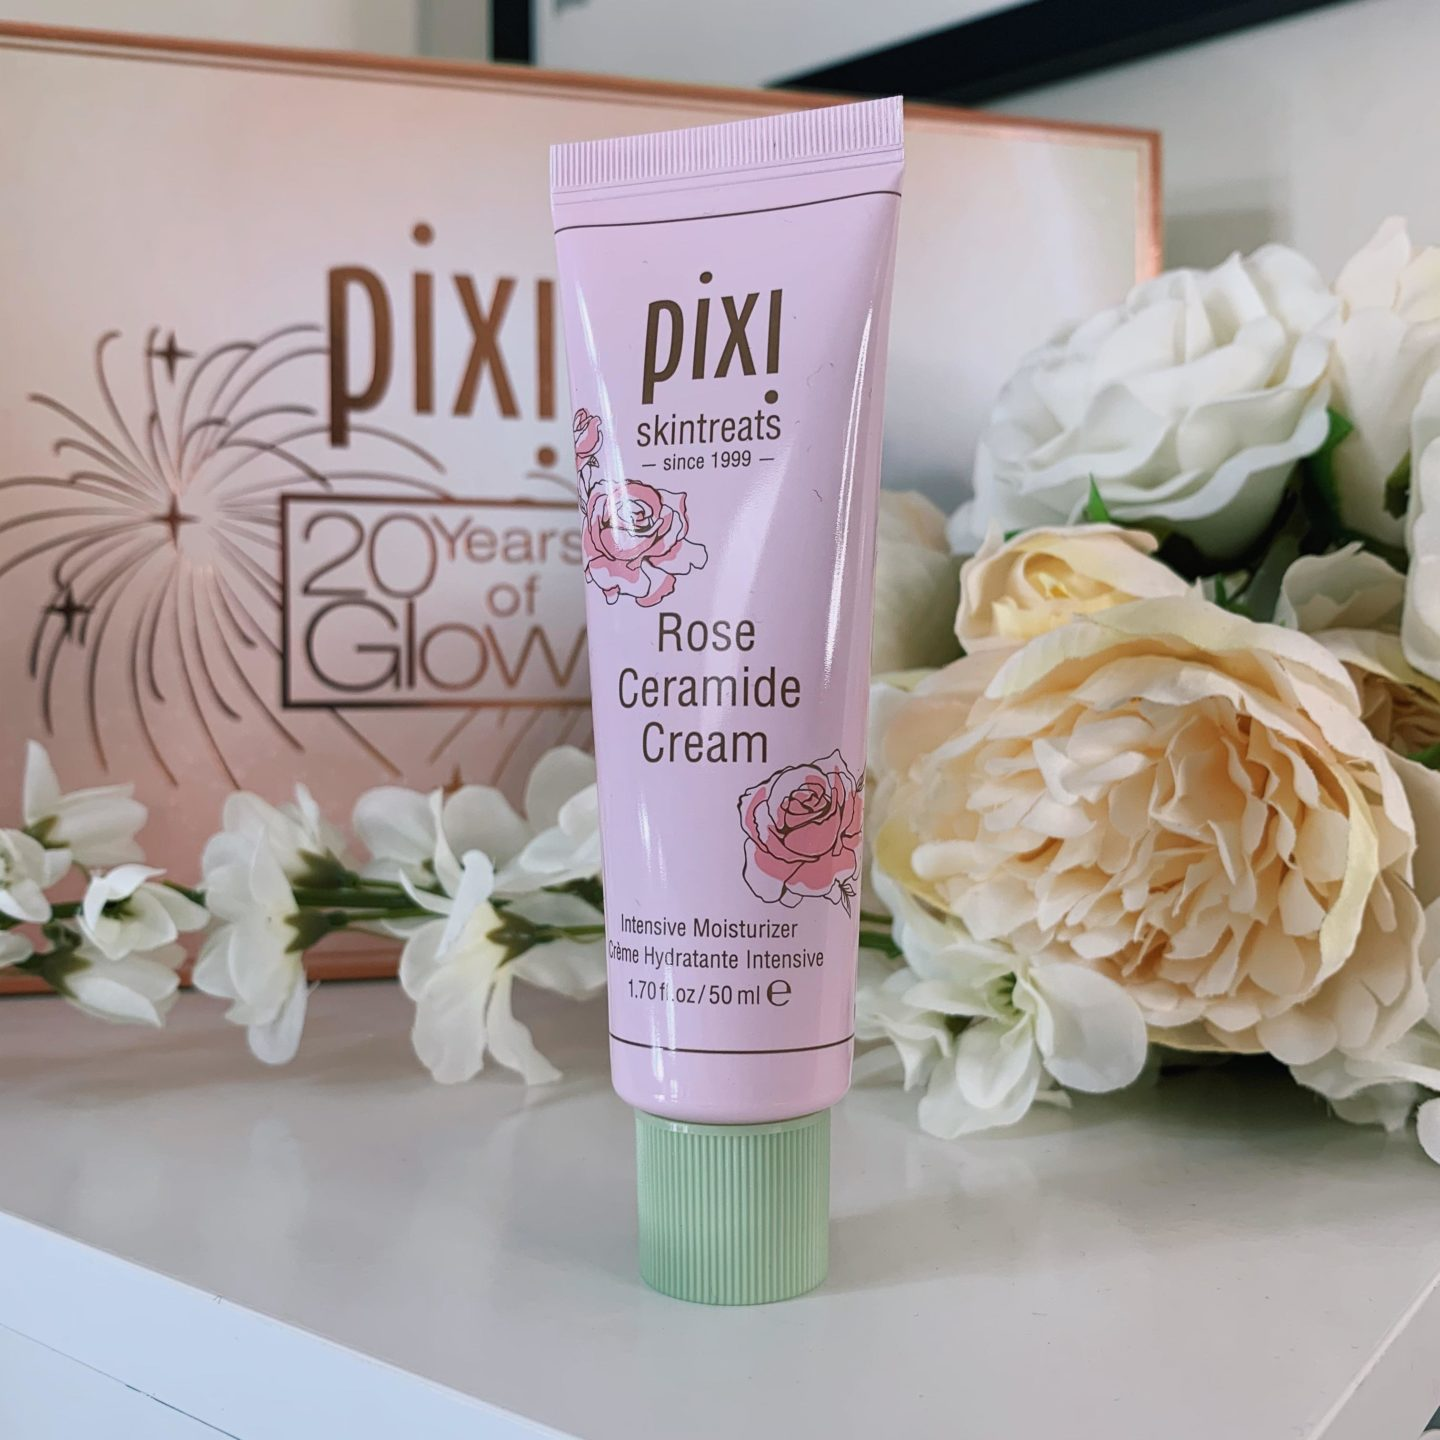 Rose Ceramide Cream - Pixi Beauty 20 Years of Glow - Miss Boux